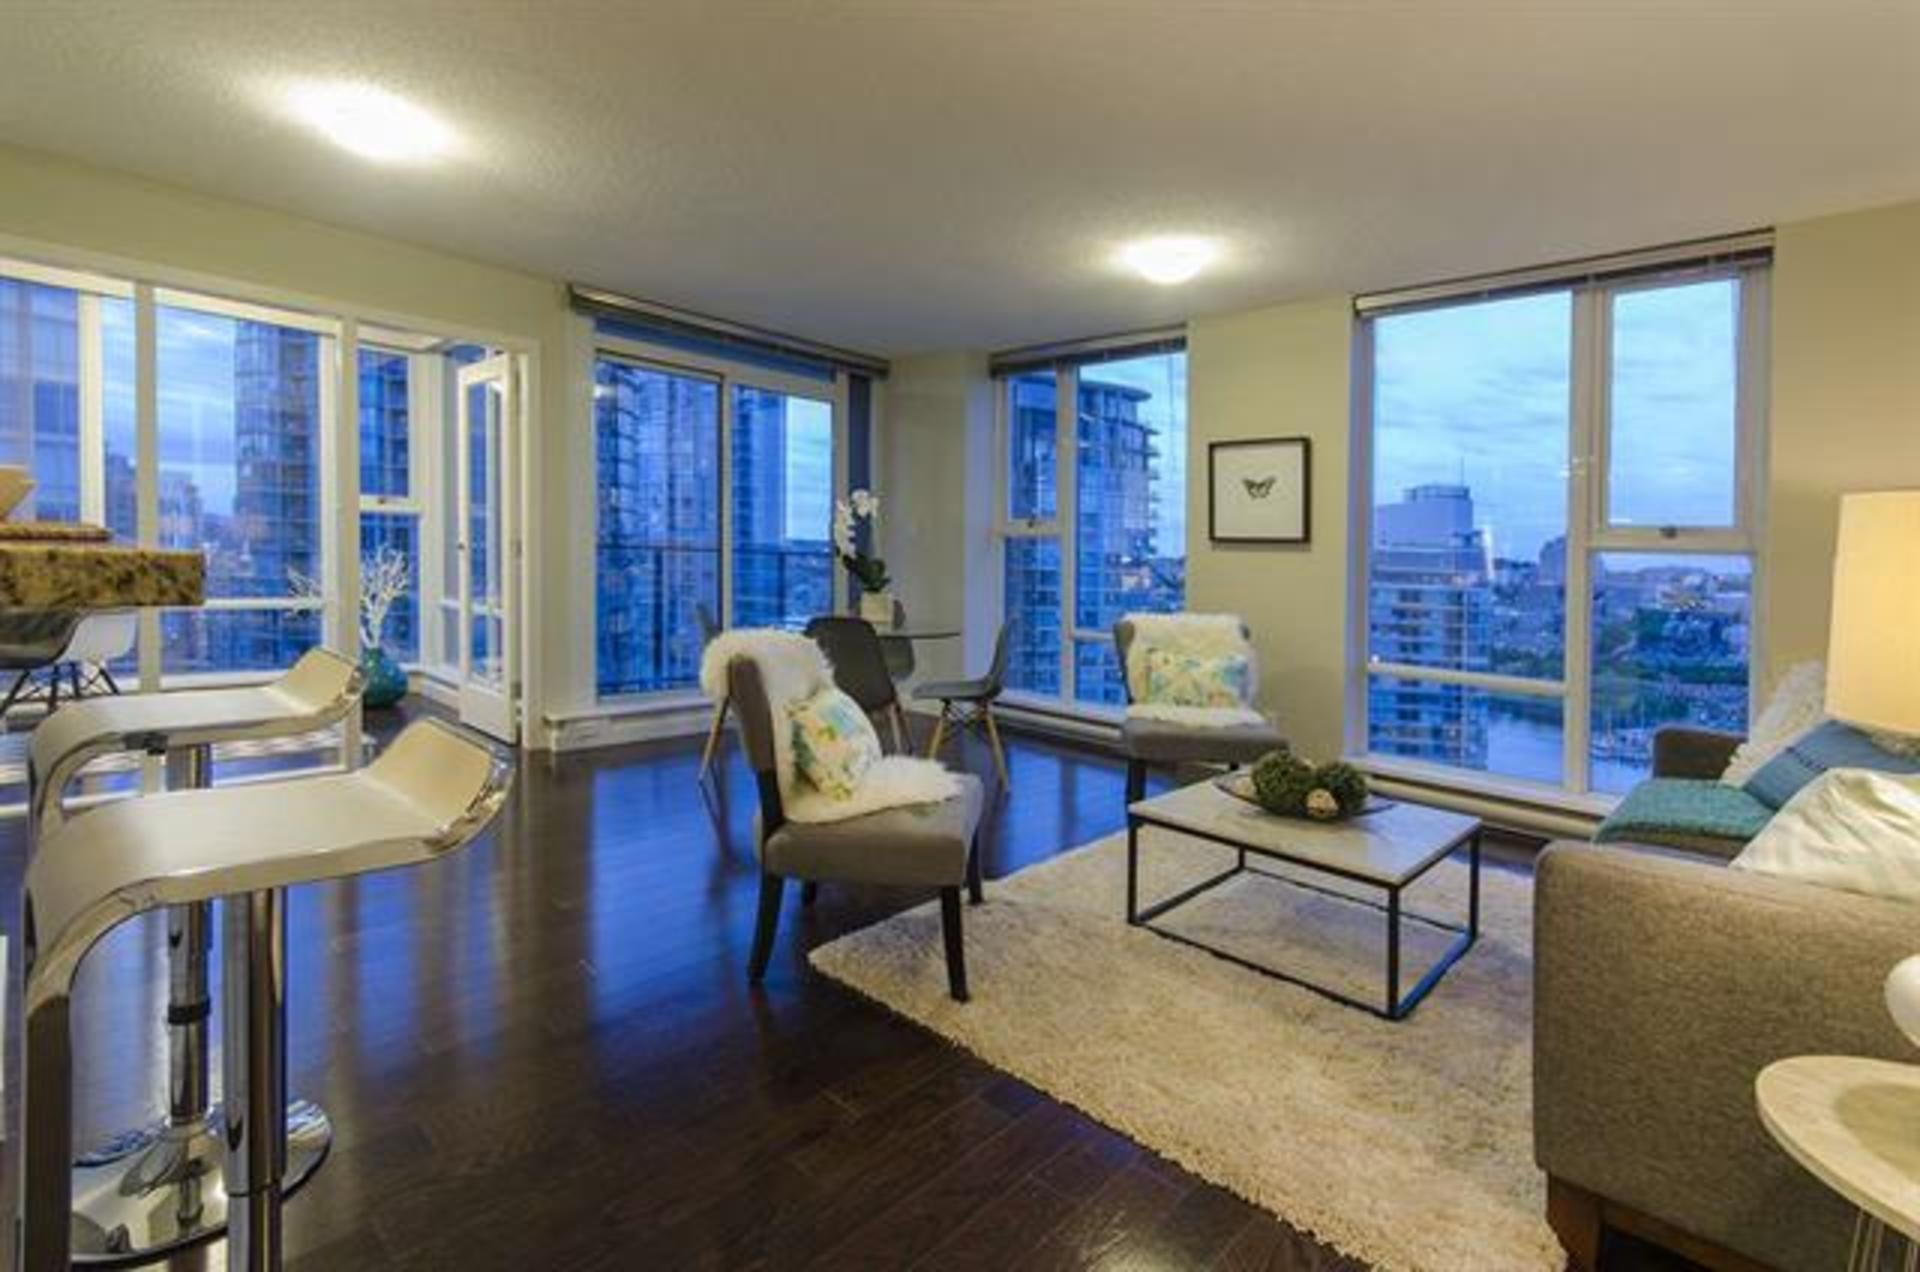 262087171-1 at 2806 - 583 Beach Crescent, Yaletown, Vancouver West